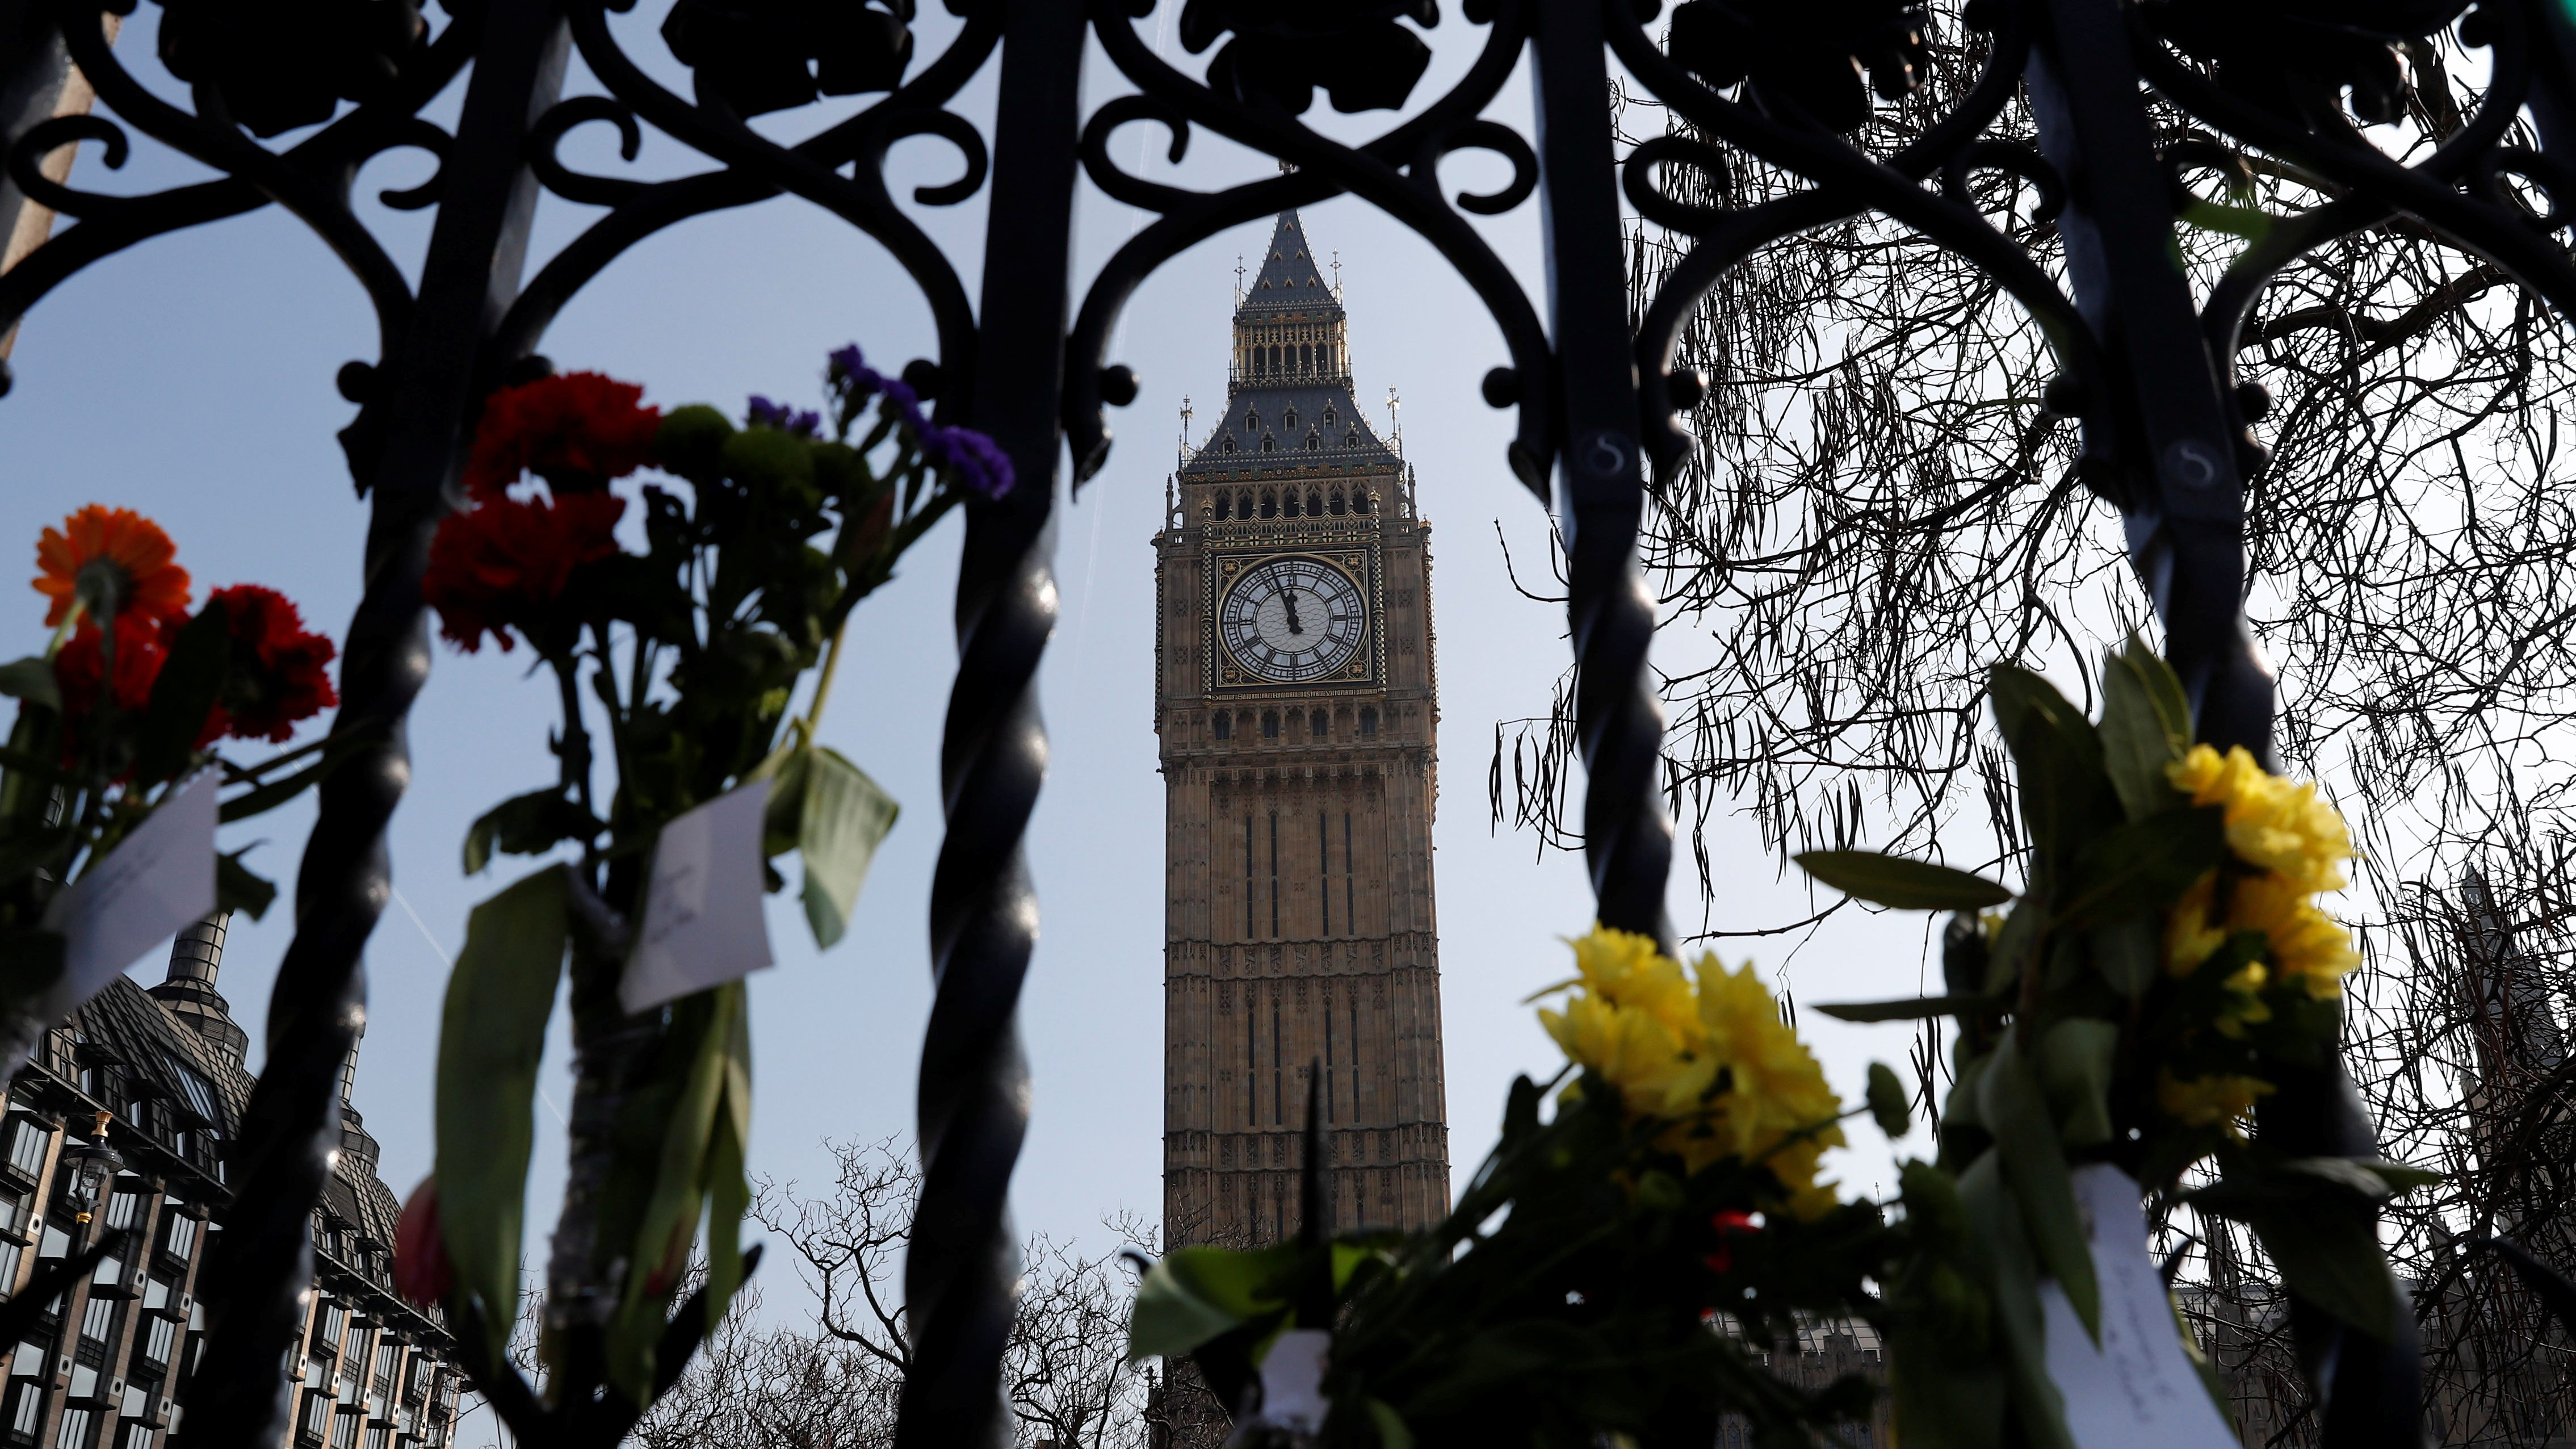 Floral tributes are attached to railings in Parliament Square following the attack in Westminster, central London, Britain March 27, 2017.